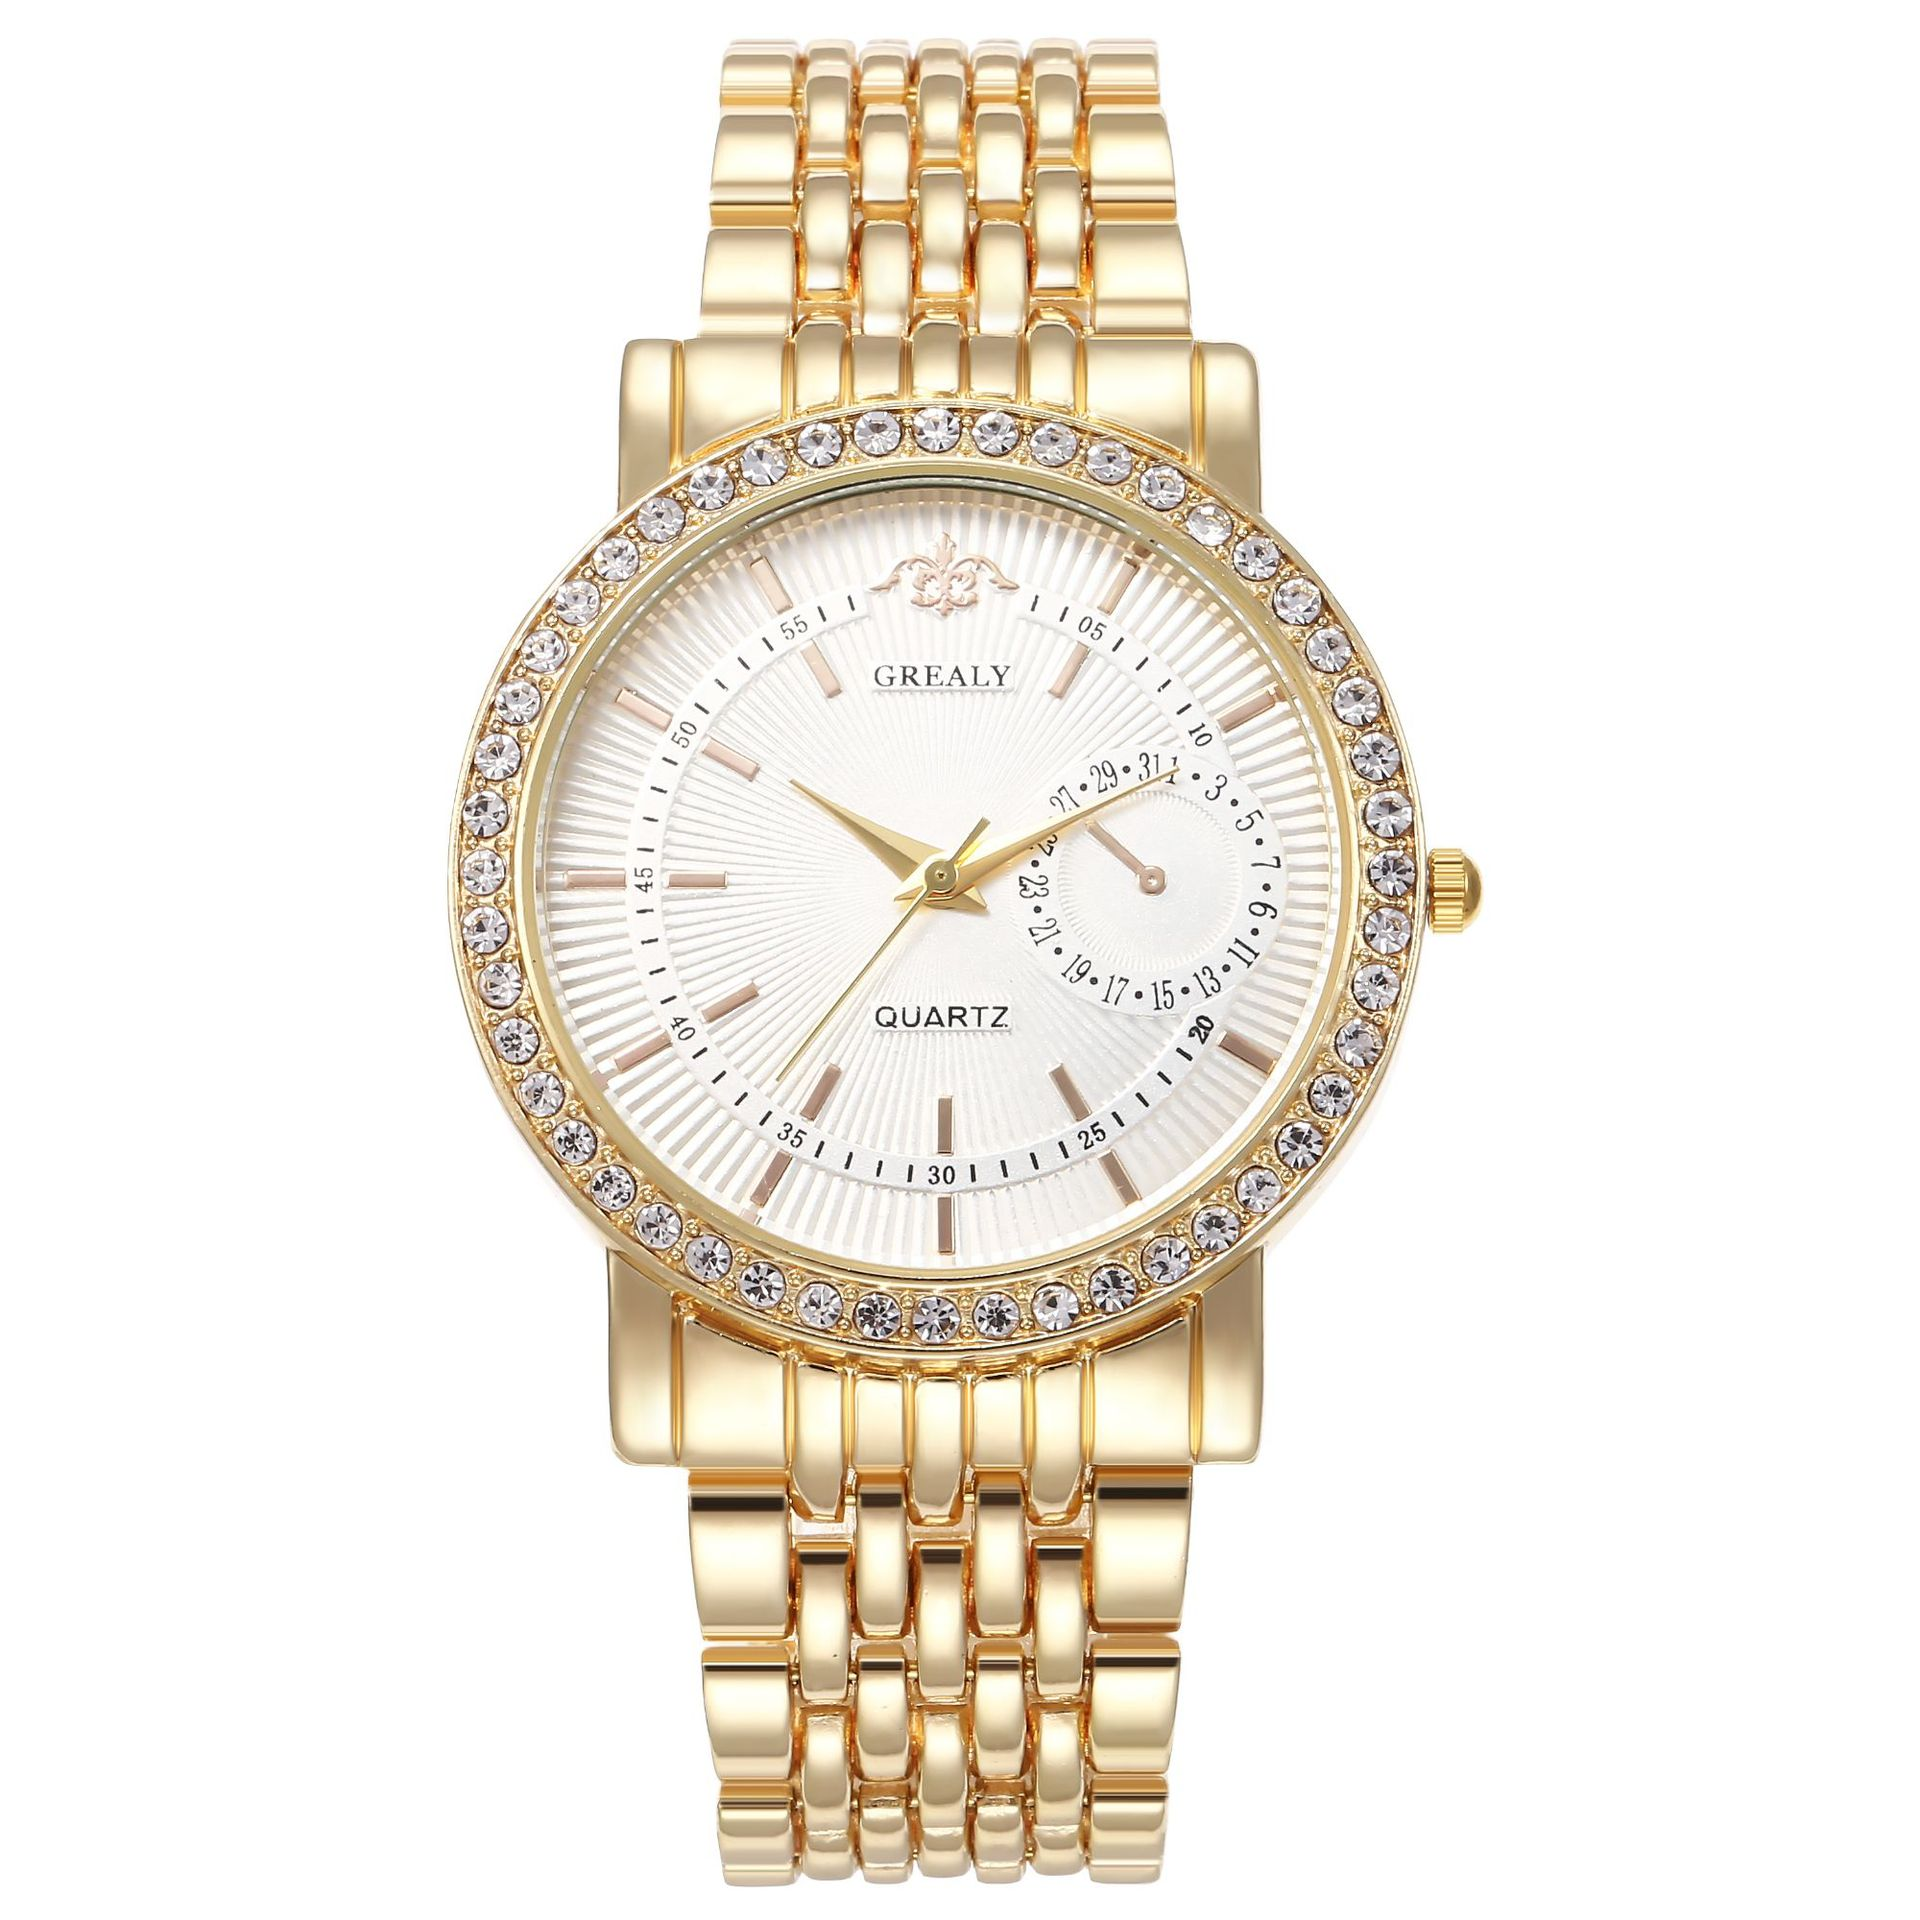 Diamond Women Luxury Brand Watch 2019 Rhinestone Elegant Ladies Watches Gold Clock Wrist Watches For Women Relogio Feminino 2019